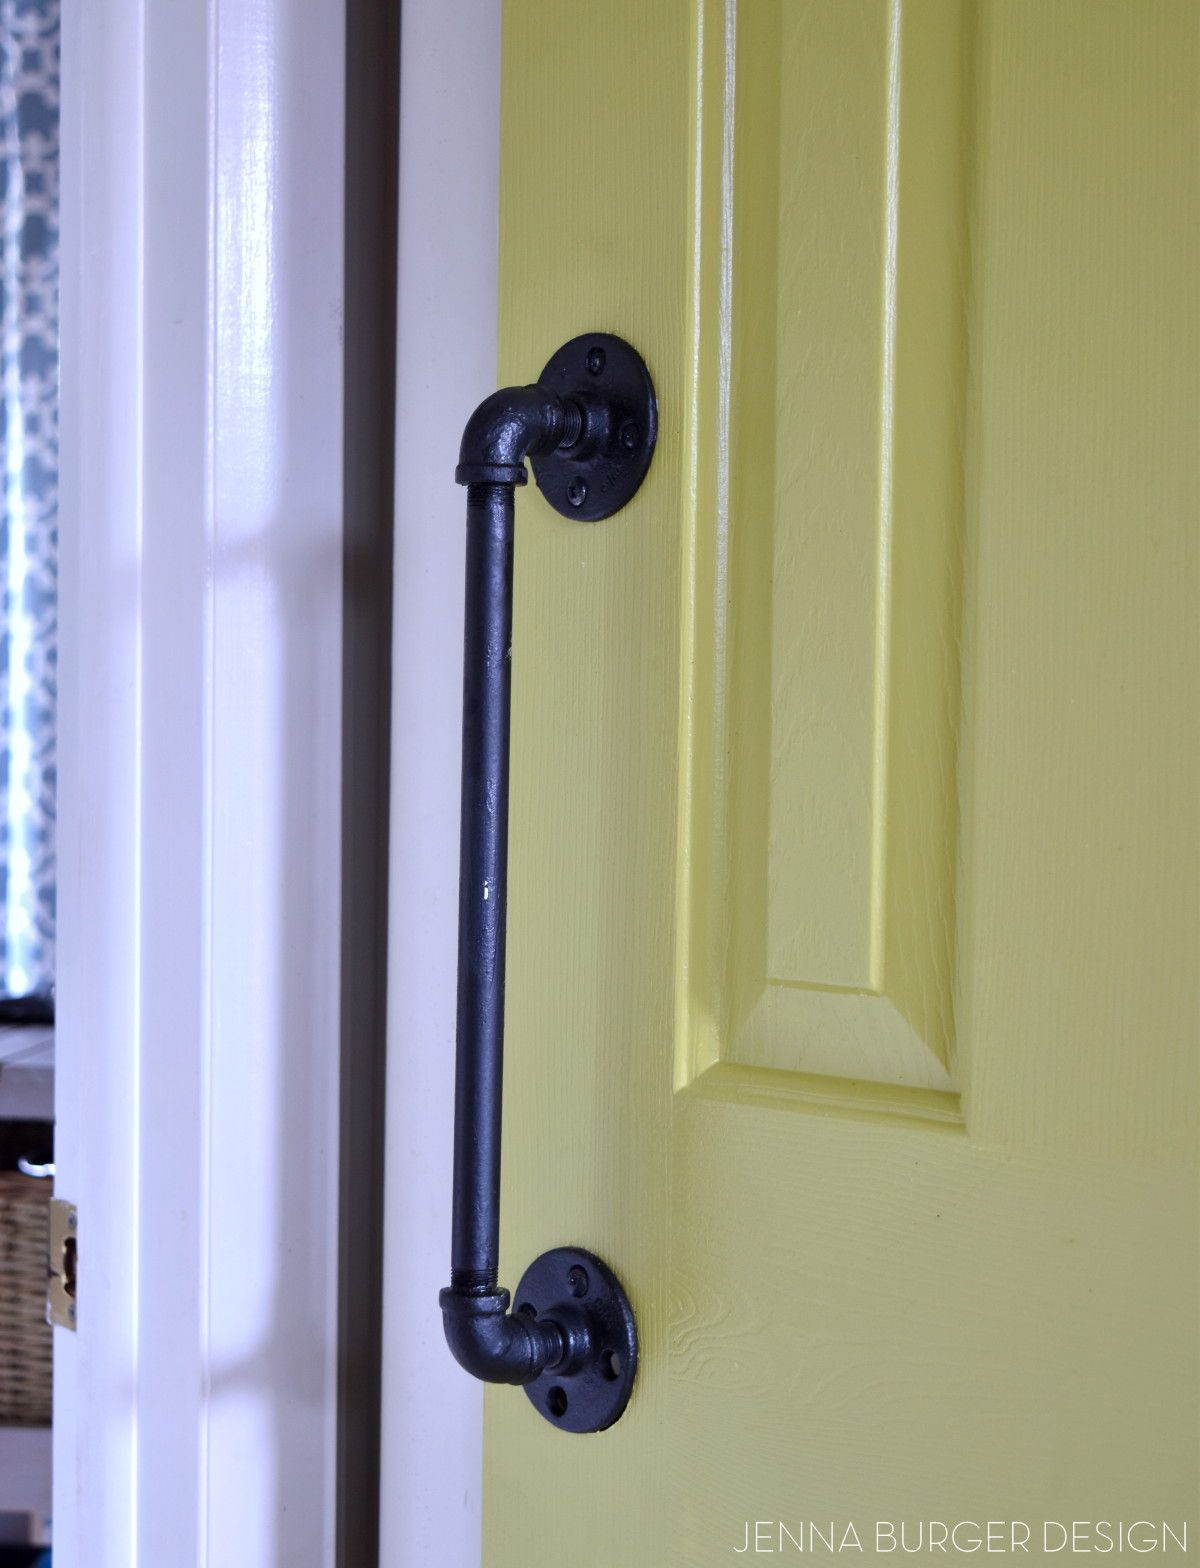 Marvelous DIY: Rolling Door Hardware Using Plumbing Pipe. Get The Look + Function Of  A Rolling Door For About $60. Custom Size To Fit Your Space. Tutorial By  Www.